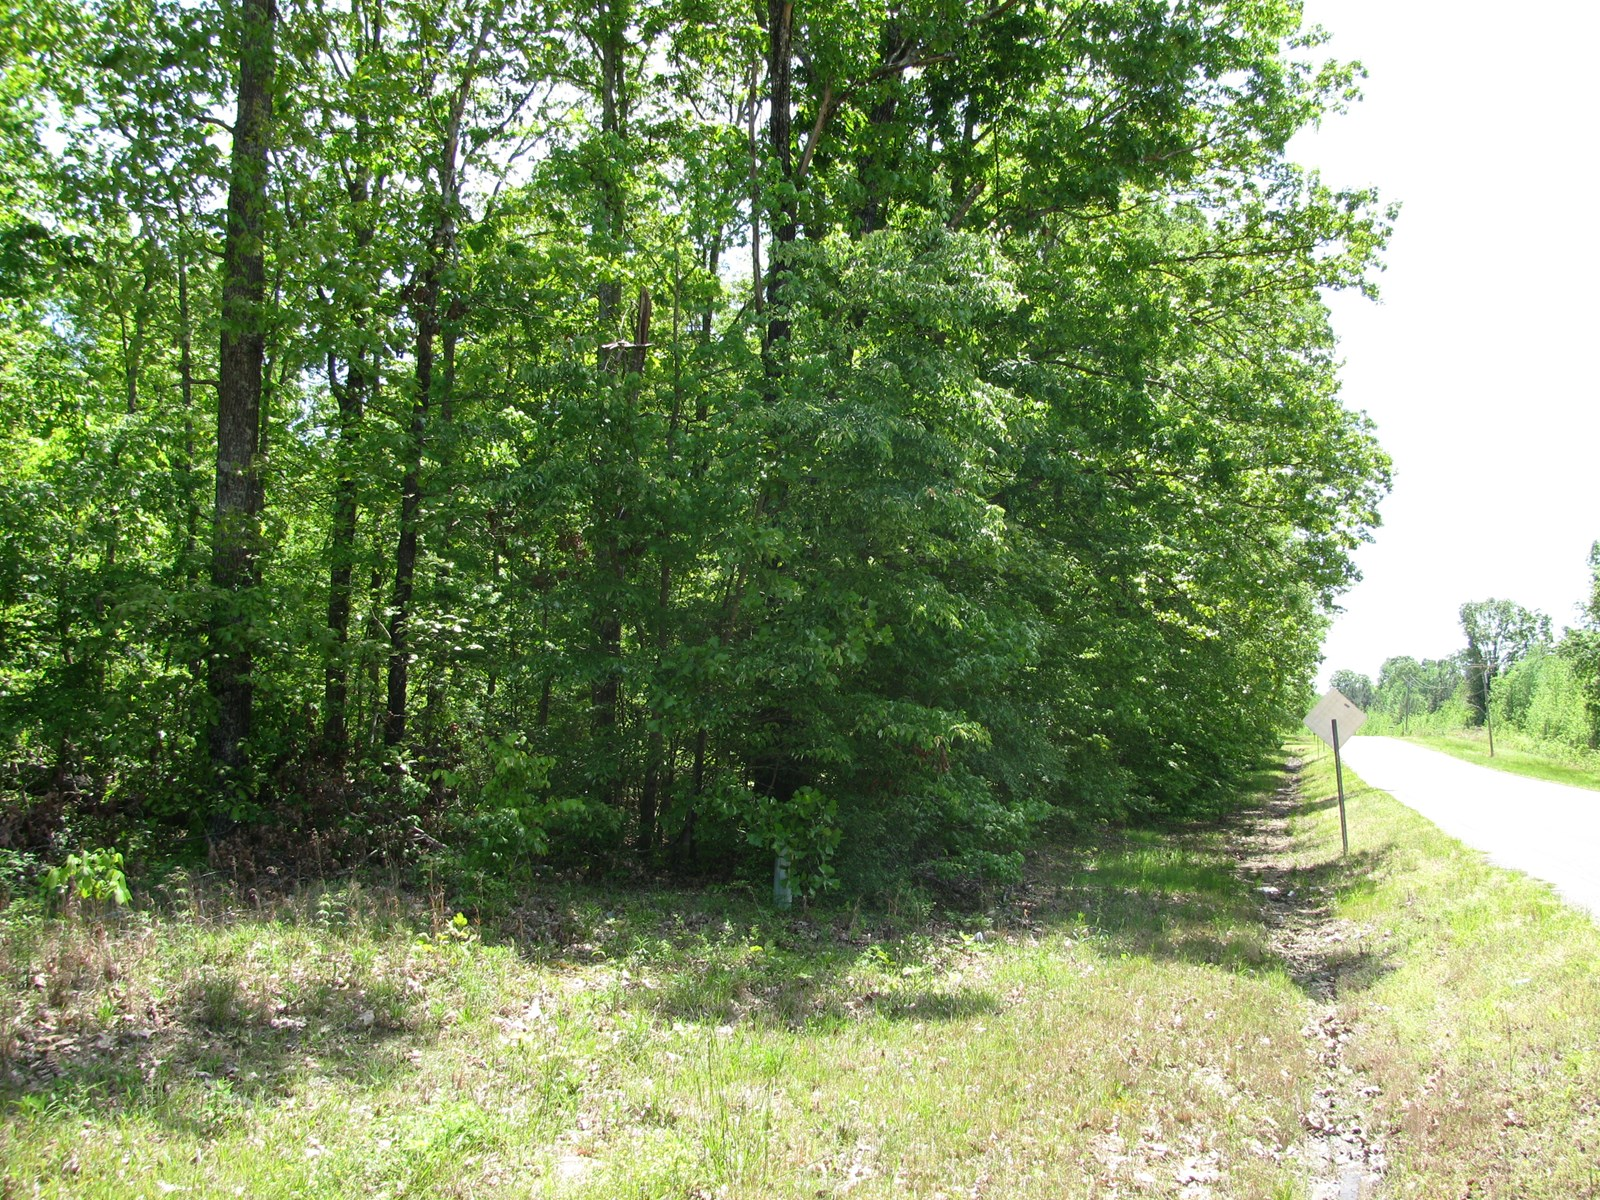 3 ACRES LAND FOR SALE IN TN, PRIVATE, WOODED